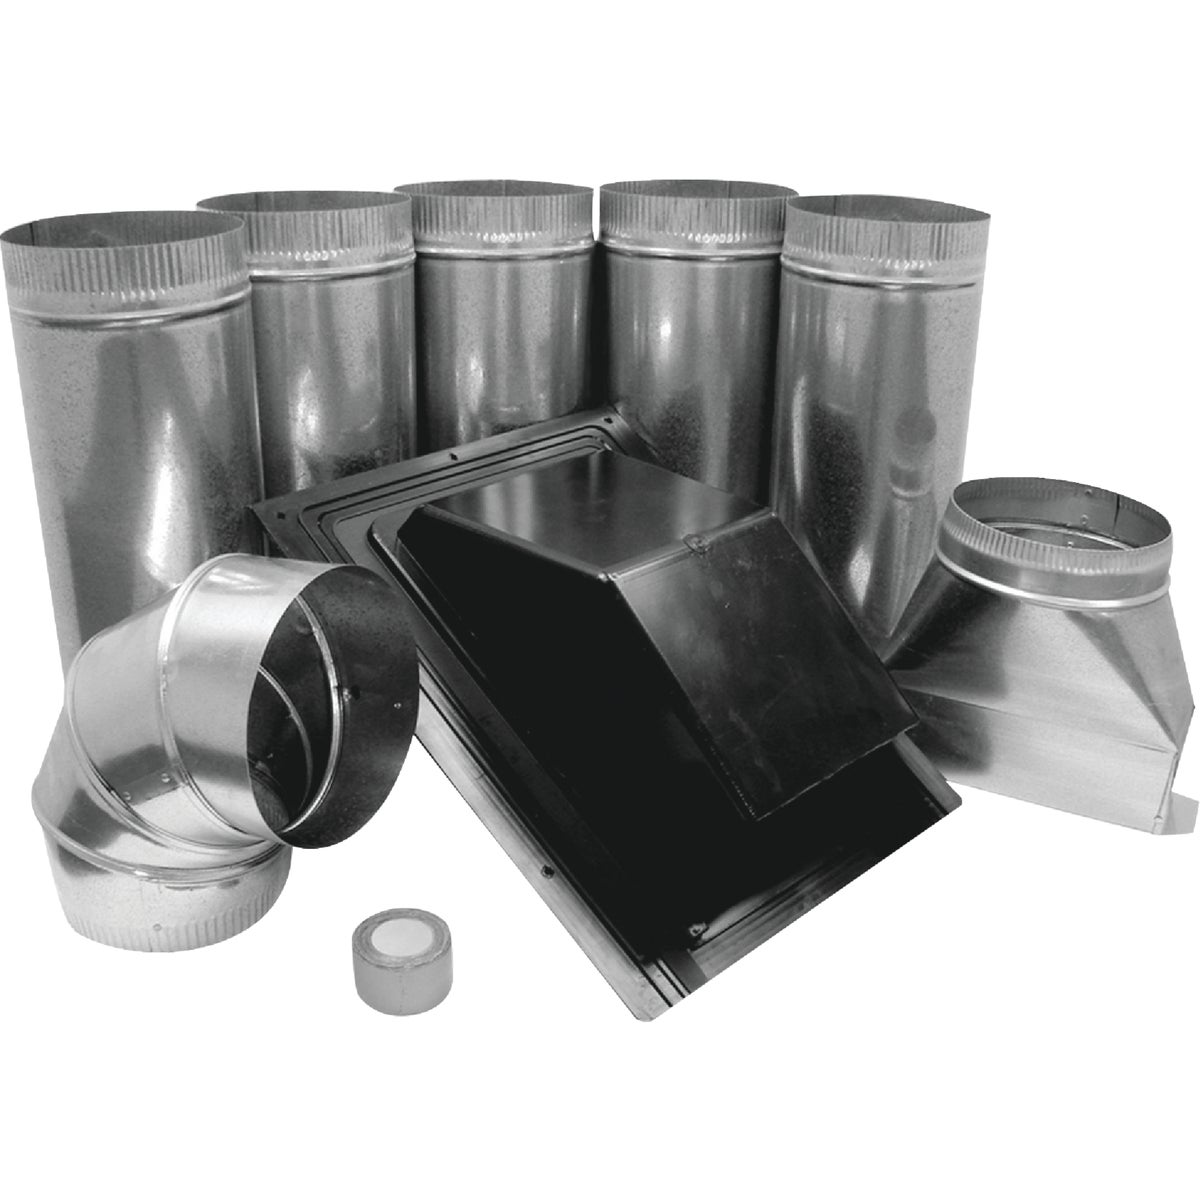 RANGE HOOD ROOF VENT KIT - 378 by Lambro Industries